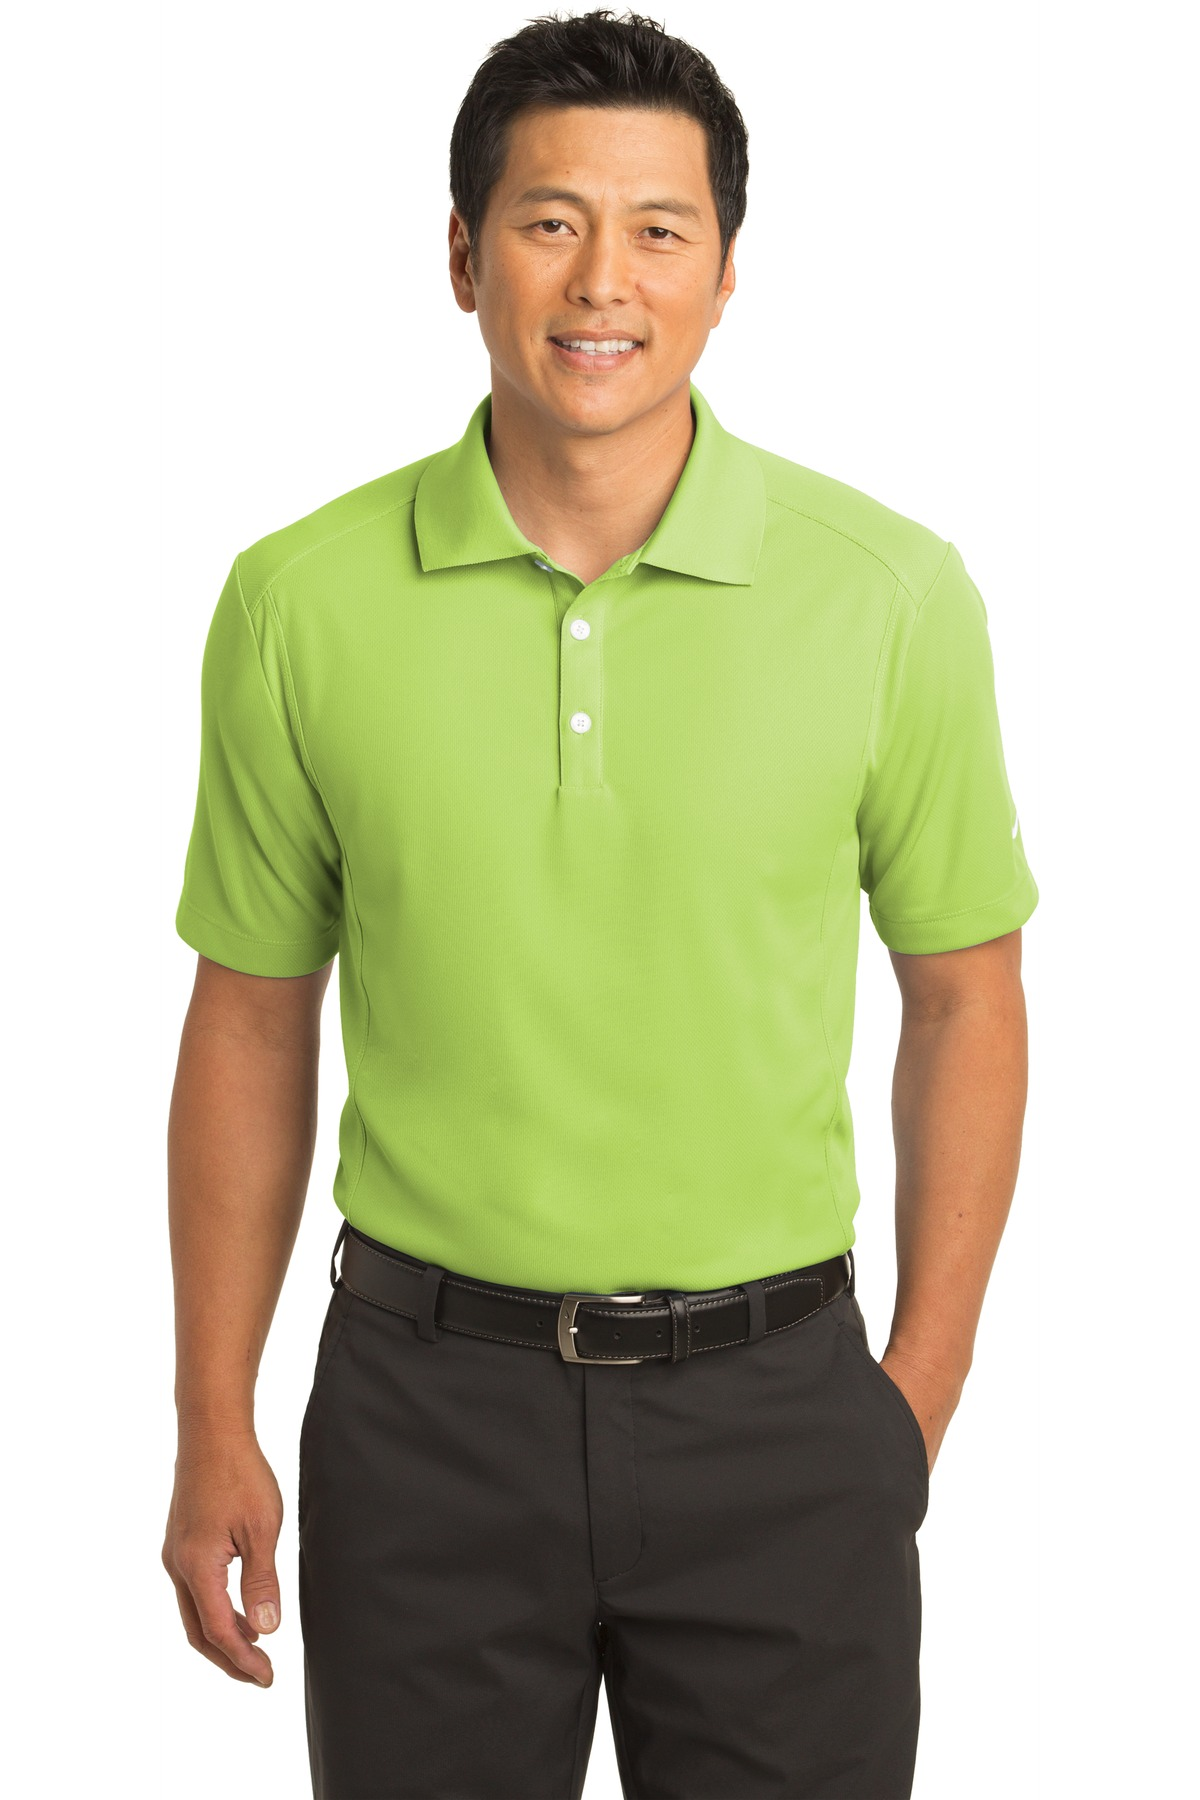 Nike Dri-FIT Classic Polo.  267020 - Vivid Green